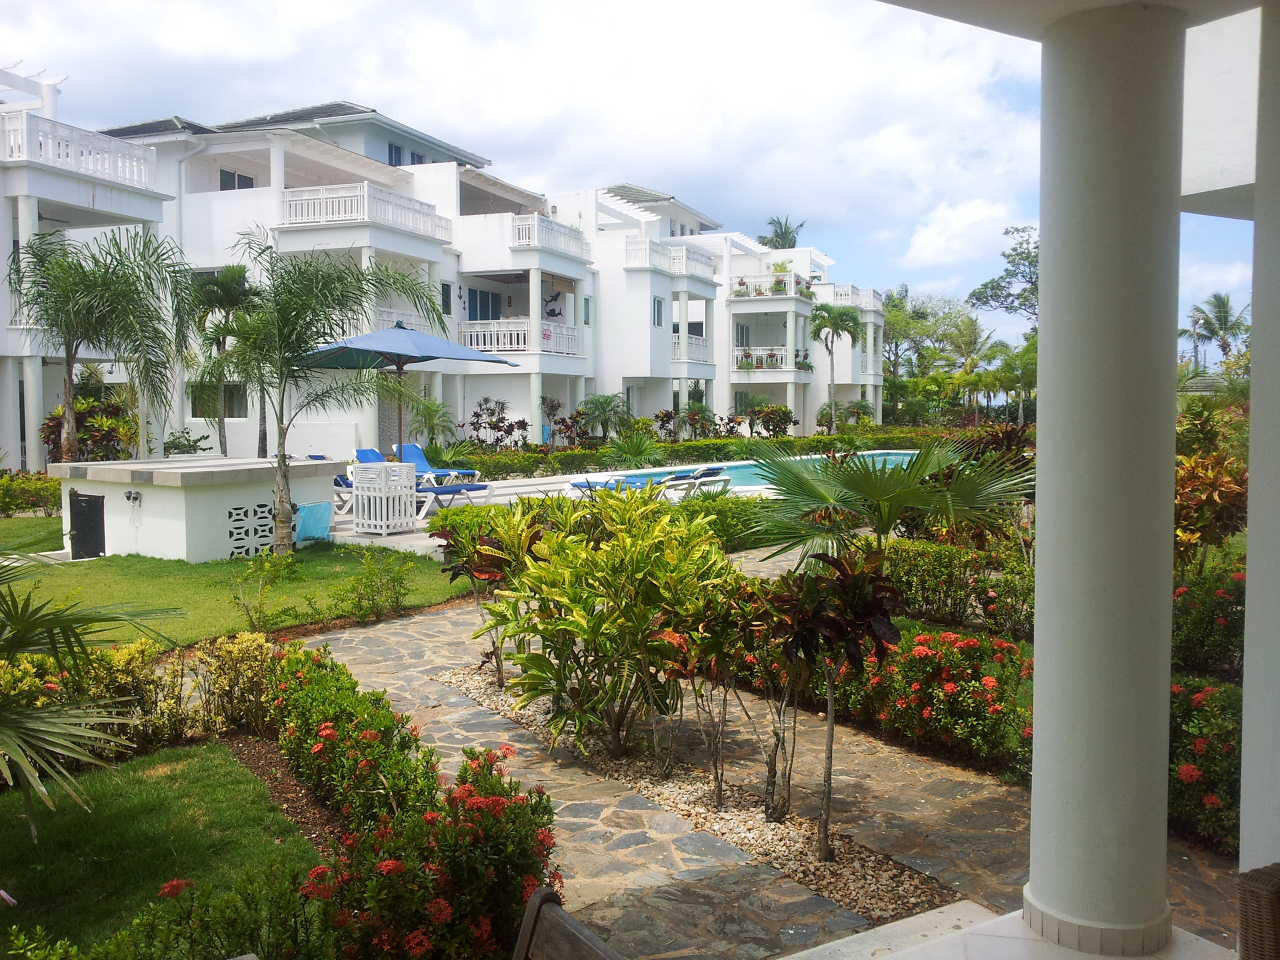 RESALE - 1 BED CONDO - GROUND FLOOR - PUNTA POPI, LAS TERRENAS - A486LT